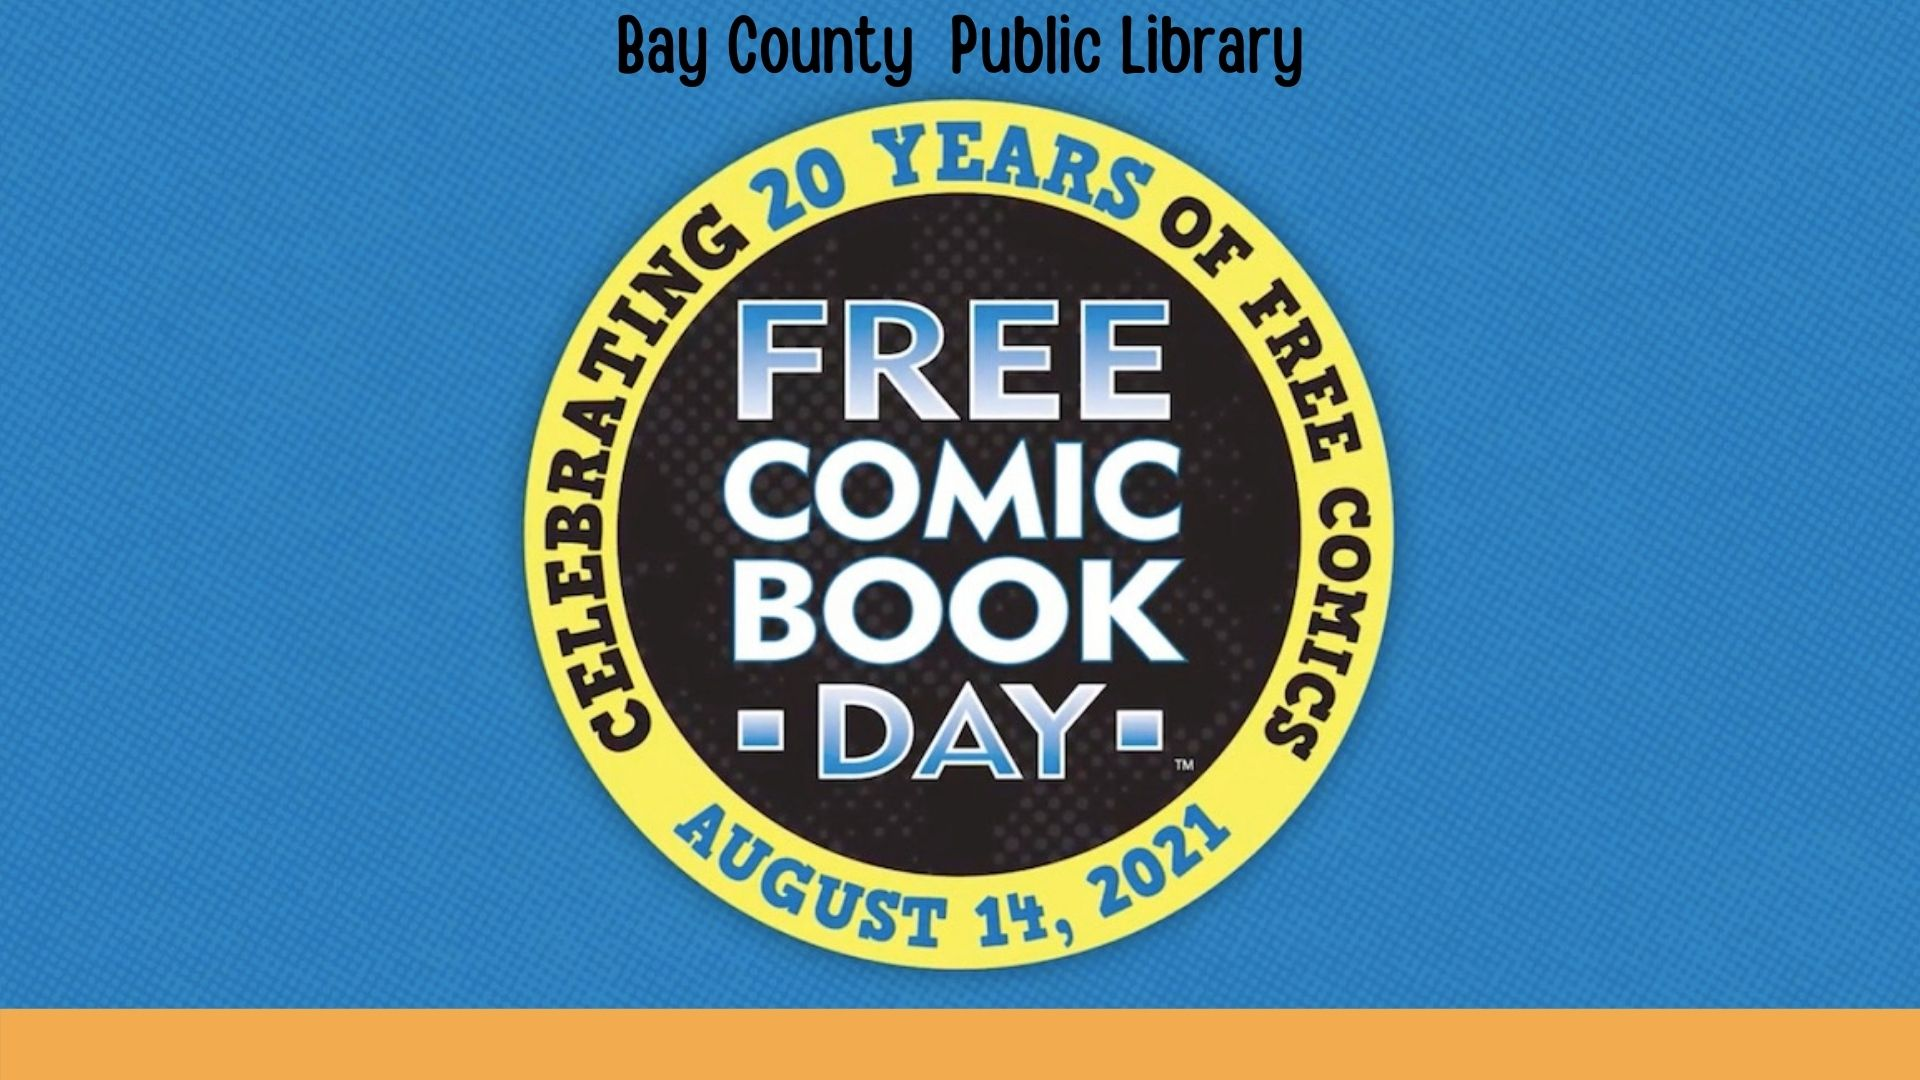 Free Comic Book Day logo for August 14 2021